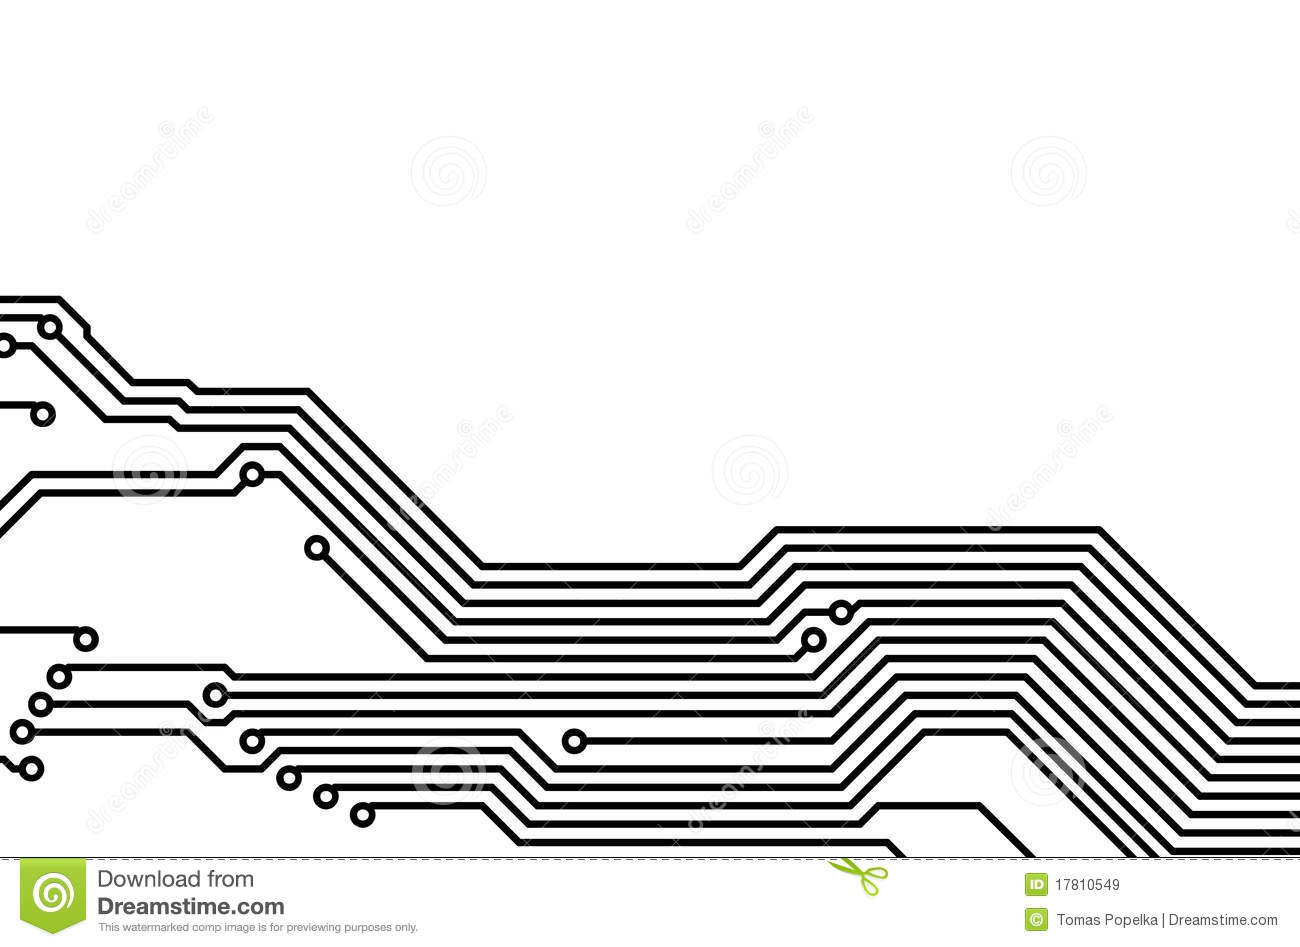 PCB (printed Circuit Board) 6 Stock Illustration - Illustration of ...